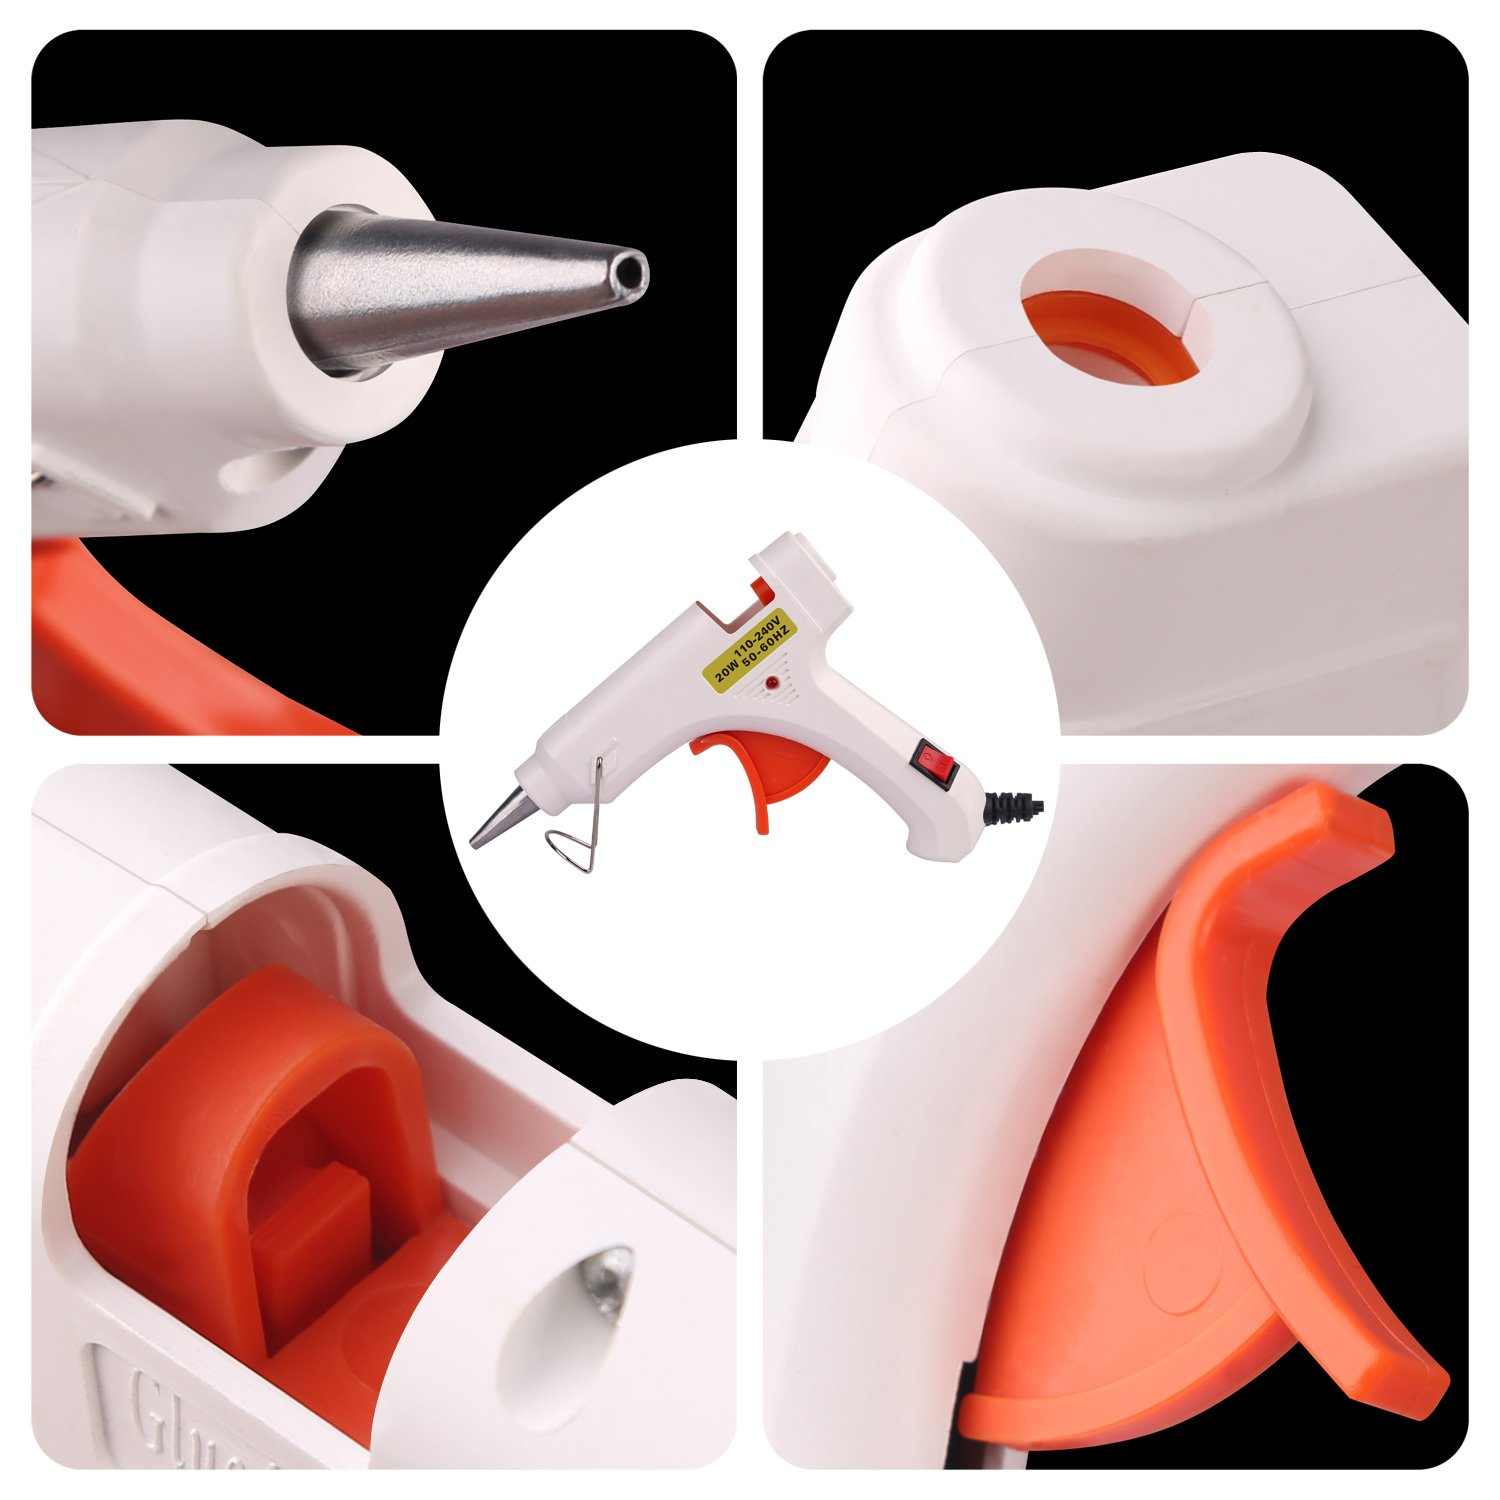 Hot Melt Glue gun with 30 pcs free glue sticks, High temperature melting glue gun with safety stand and built in fuse for over heat protection for small craft projects, home, office and quick repair by FLY5D (Image #6)